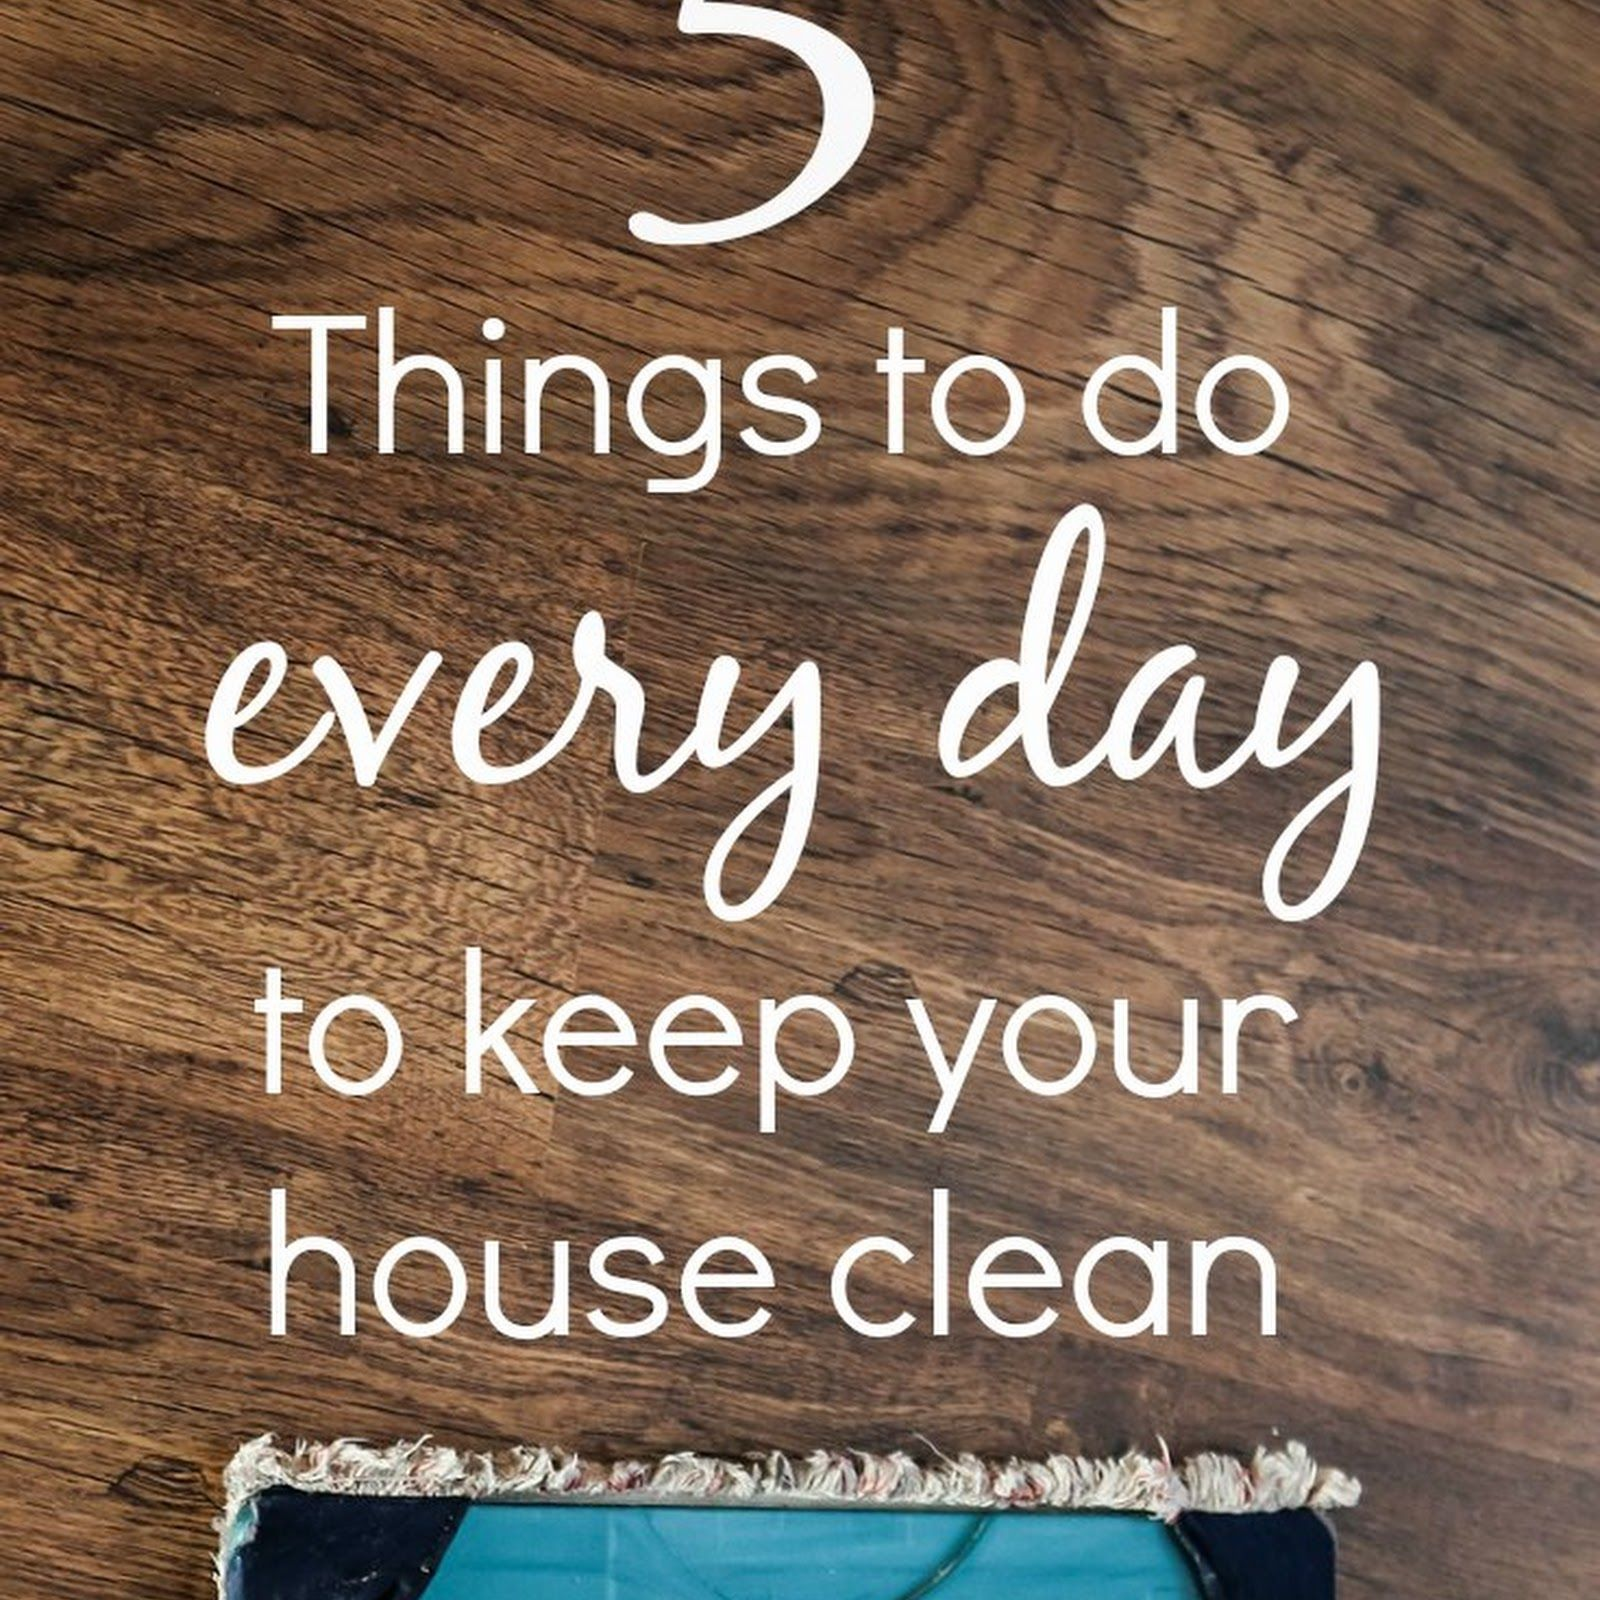 5 Things To Do Every Day To Keep Your House Clean And